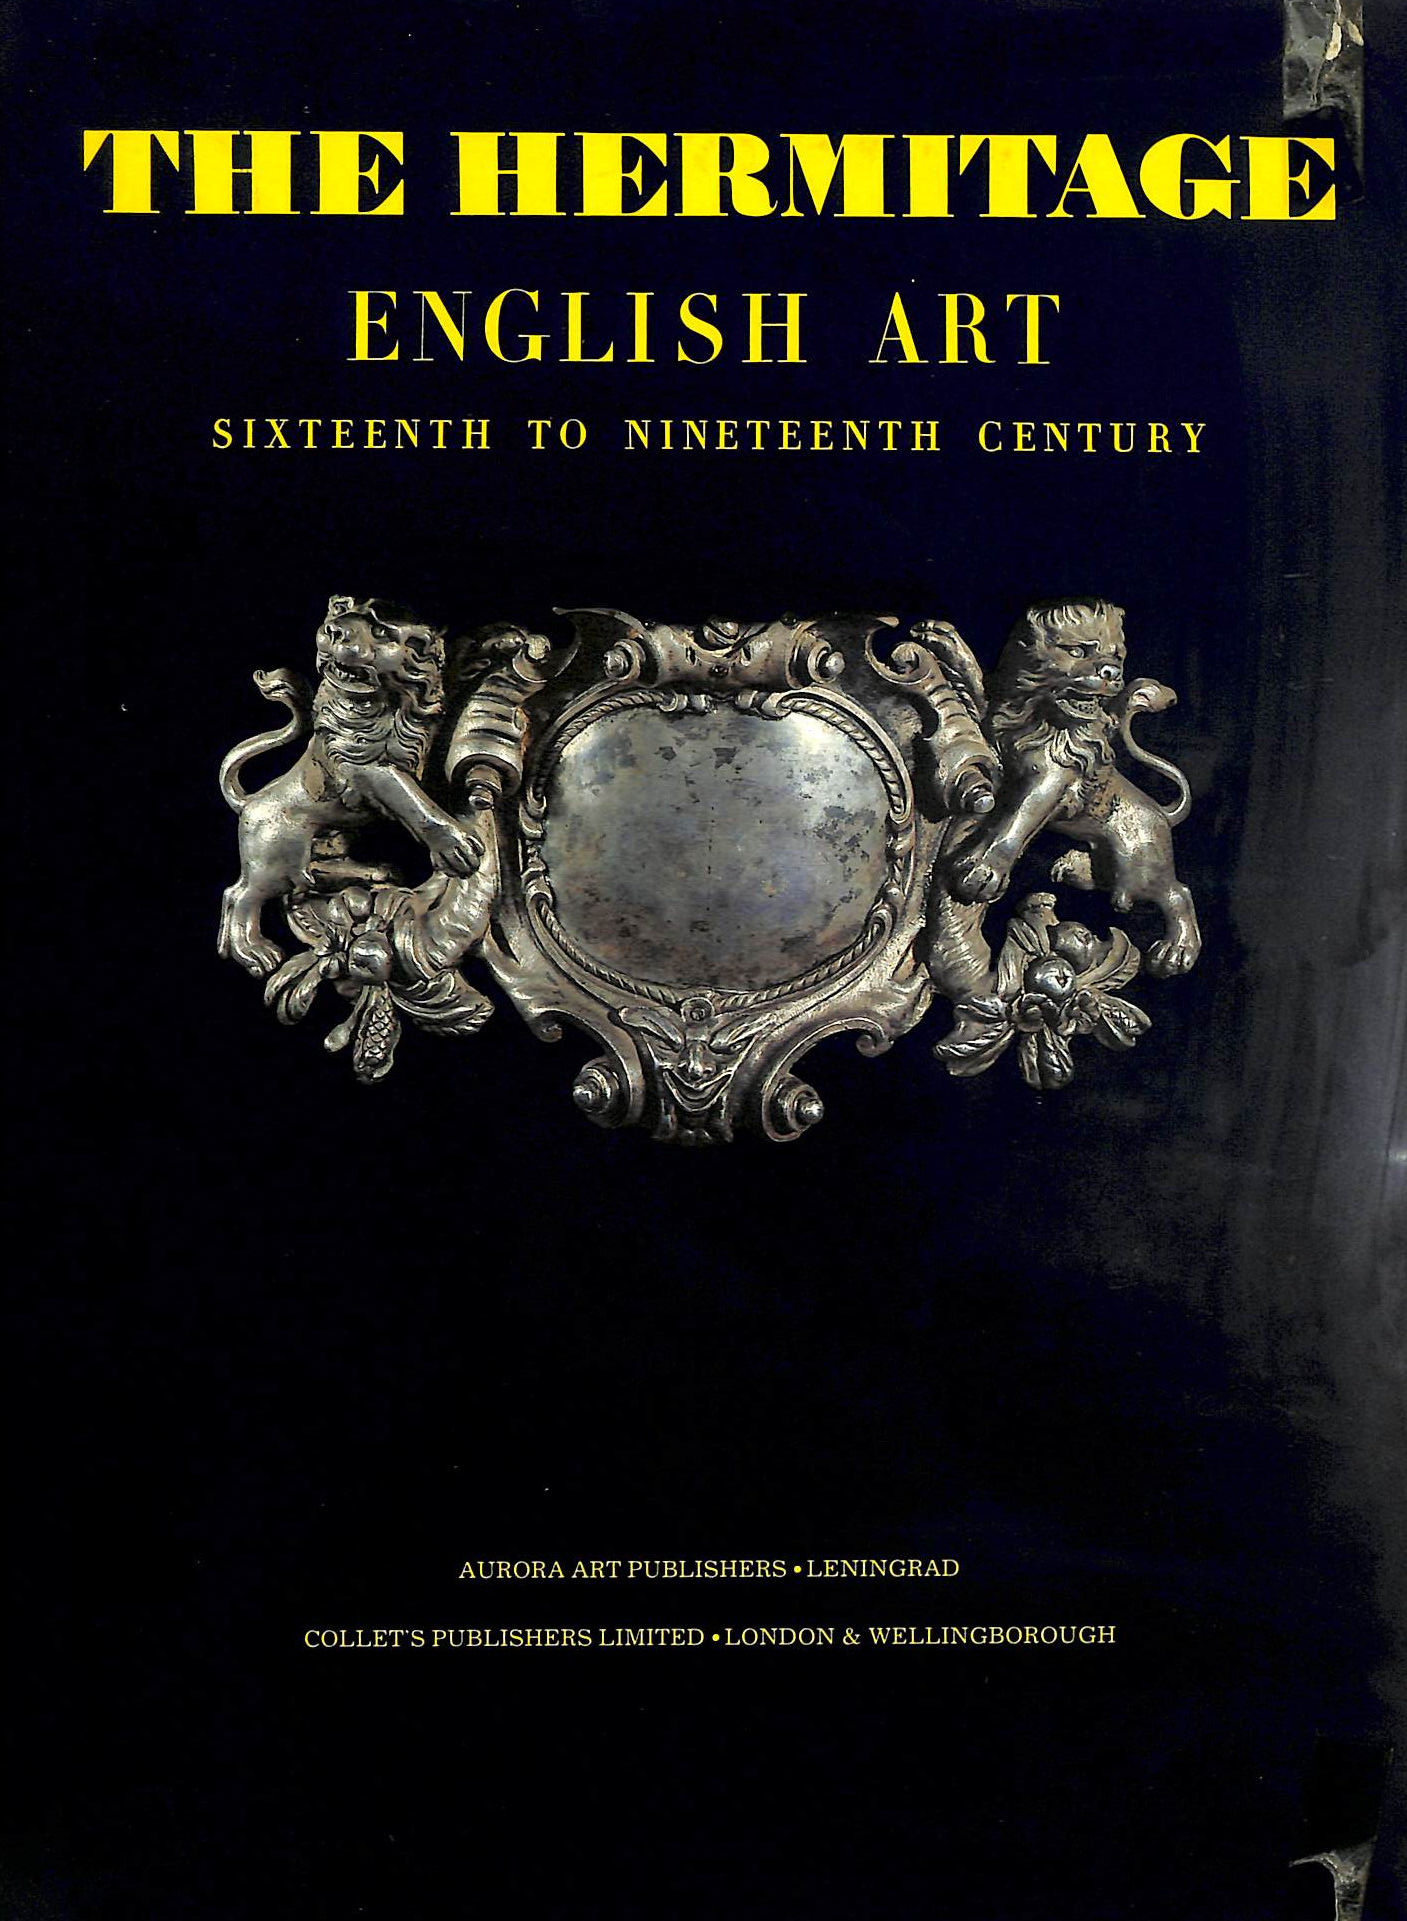 Image for The Hermitage: English Art, 16Th-19Th Centuries - Painting, Sculpture, Prints, Drawings And Minor Arts